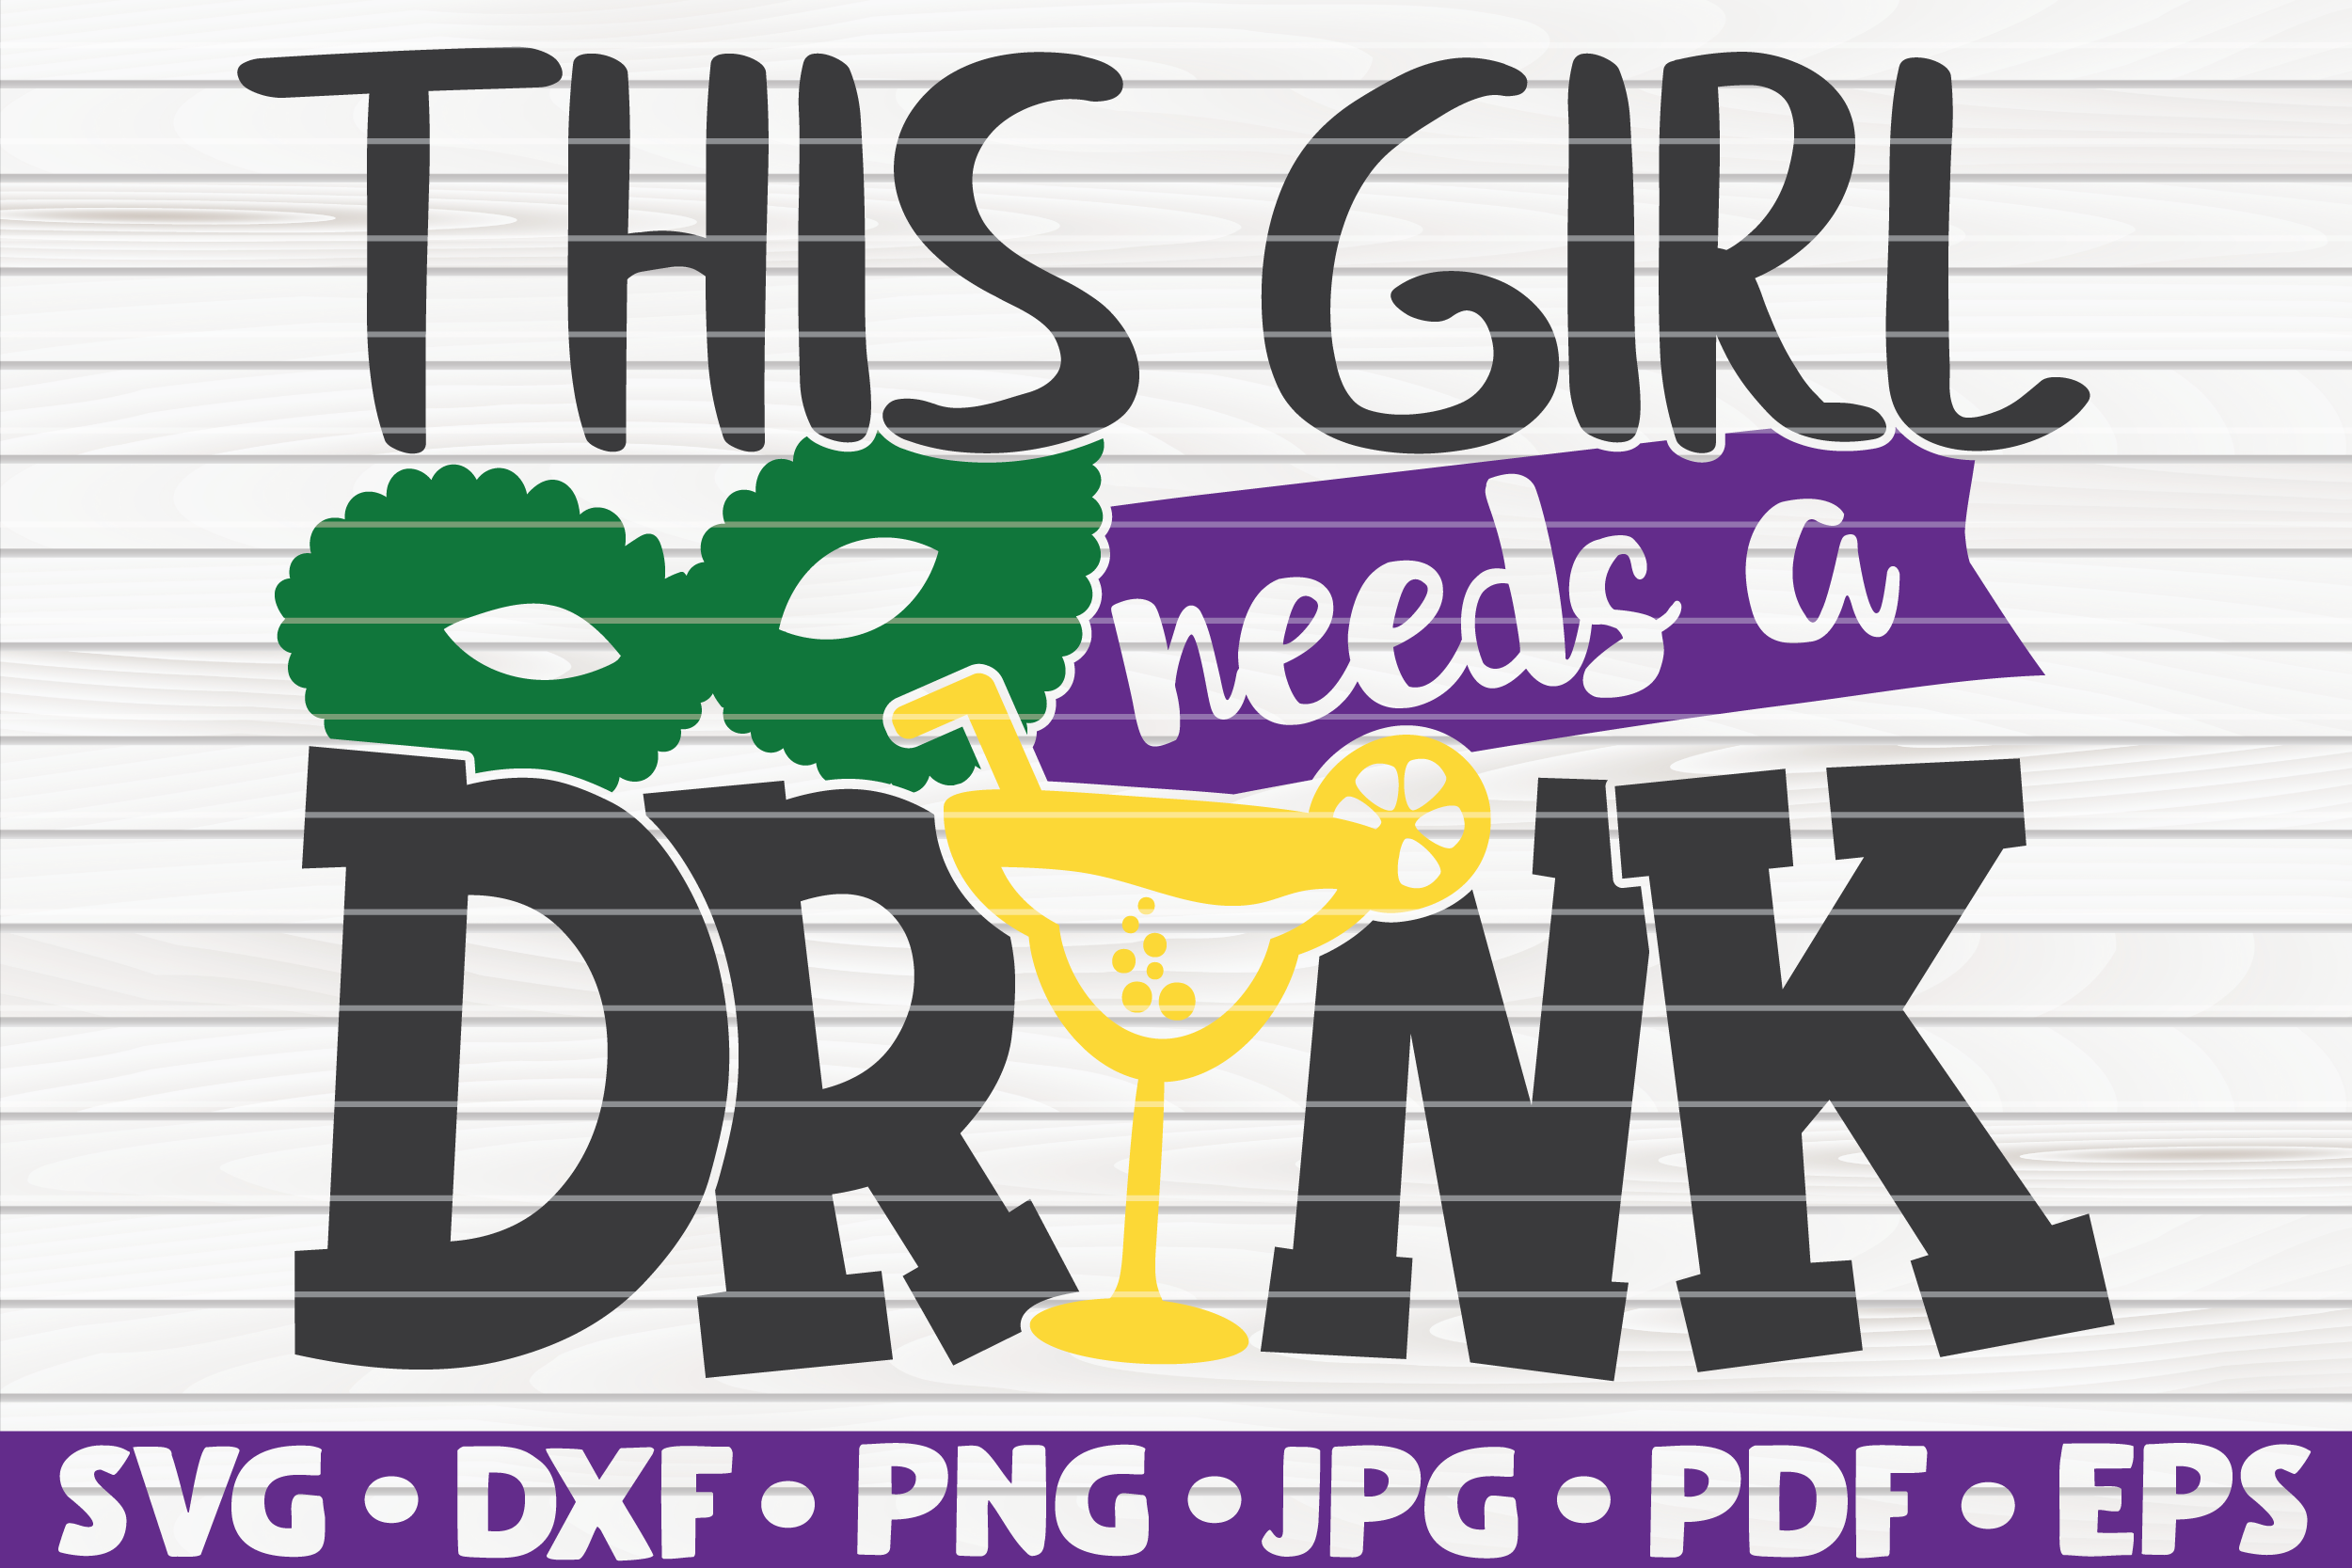 This girl needs a drink   Mardi Gras saying   SVG   cut file example image 1